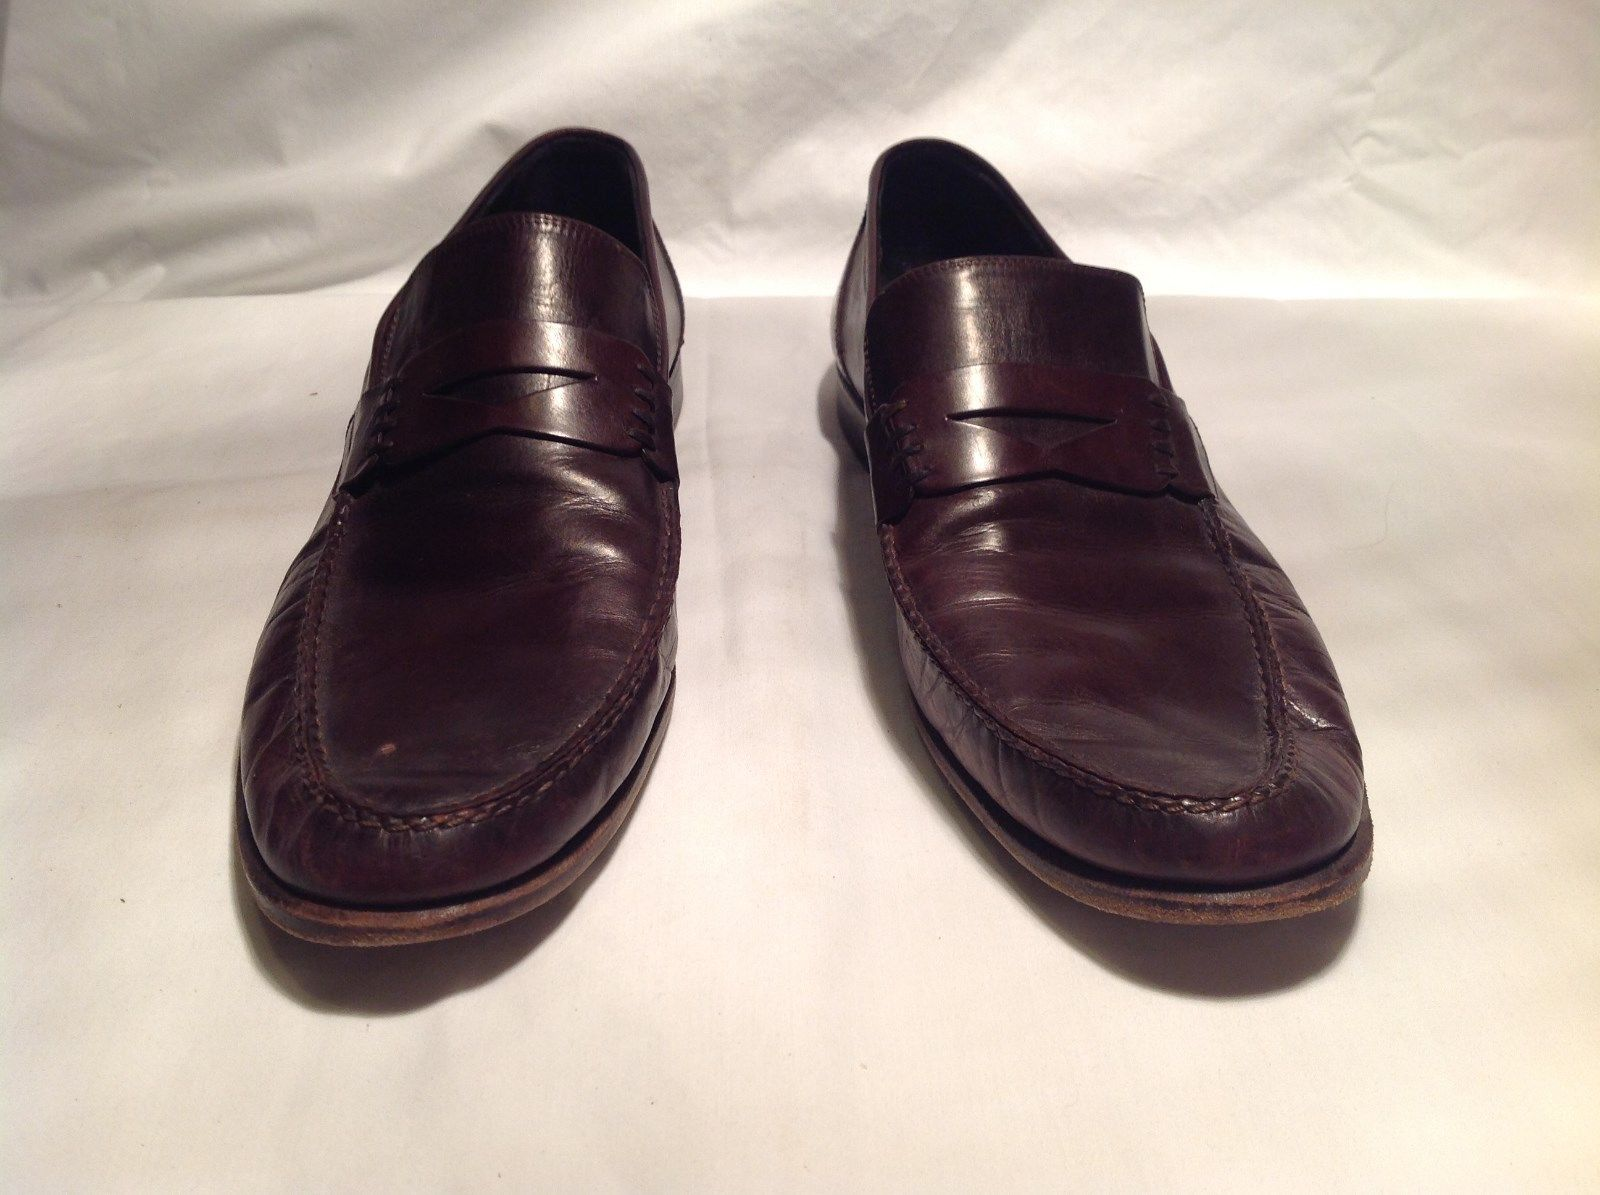 Lorenzo Banfi Brown Dress Shoes Loafers Slip On Made In Italy Size 12